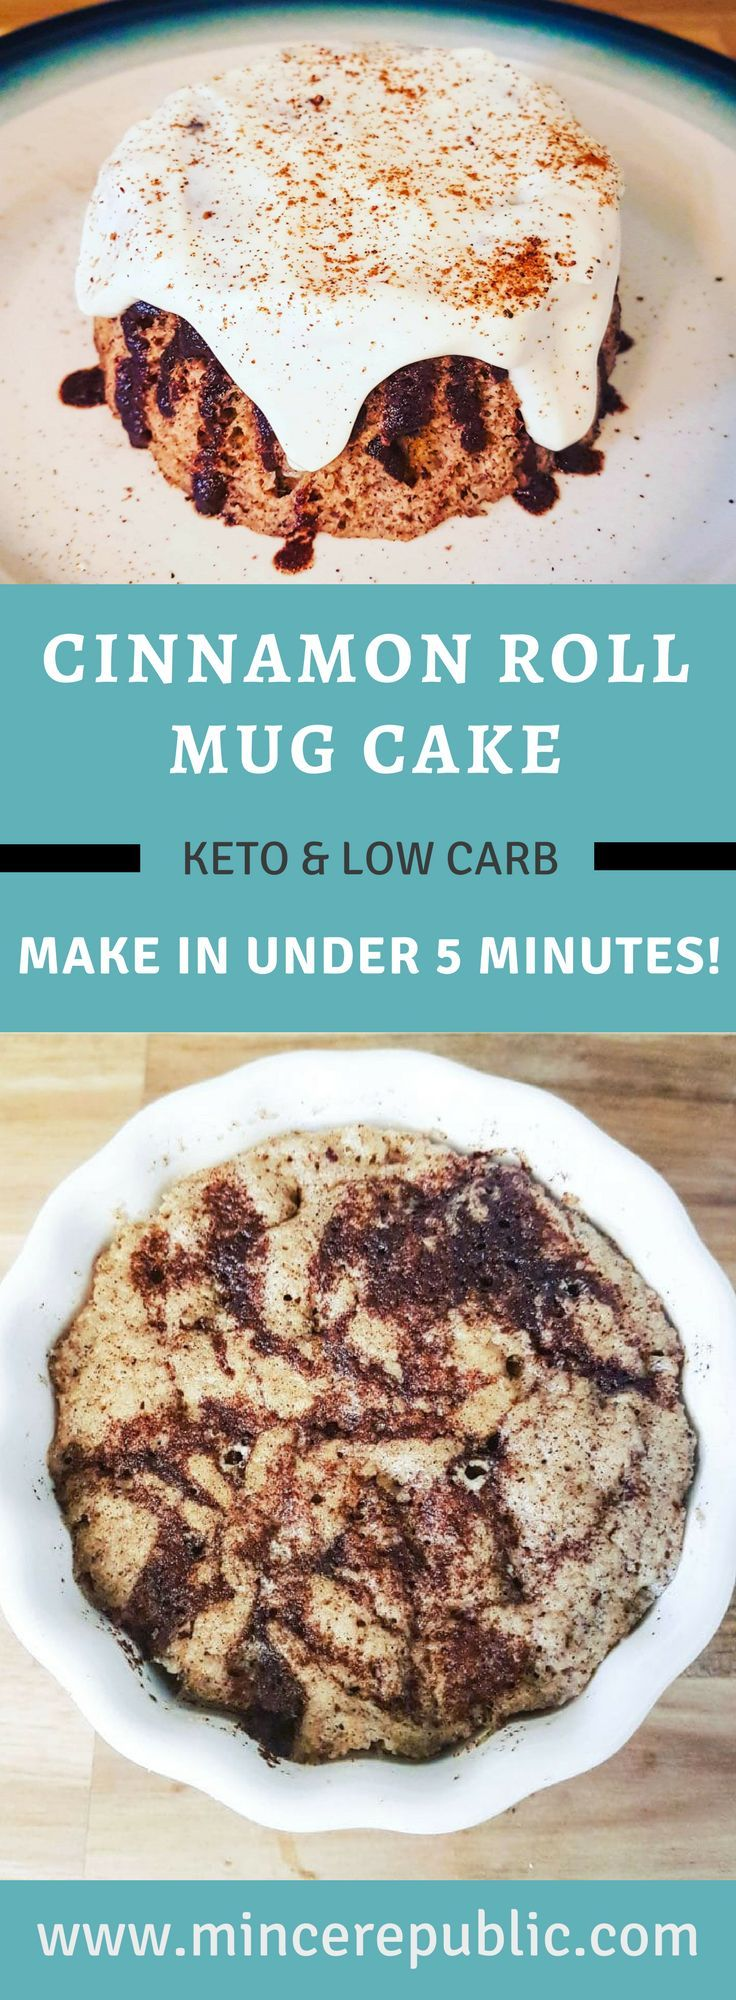 Cinnamon Roll Mug Cake Recipe | Made in under 5 minutes! #lowcarb #ketodesserts | mincerepublic.com